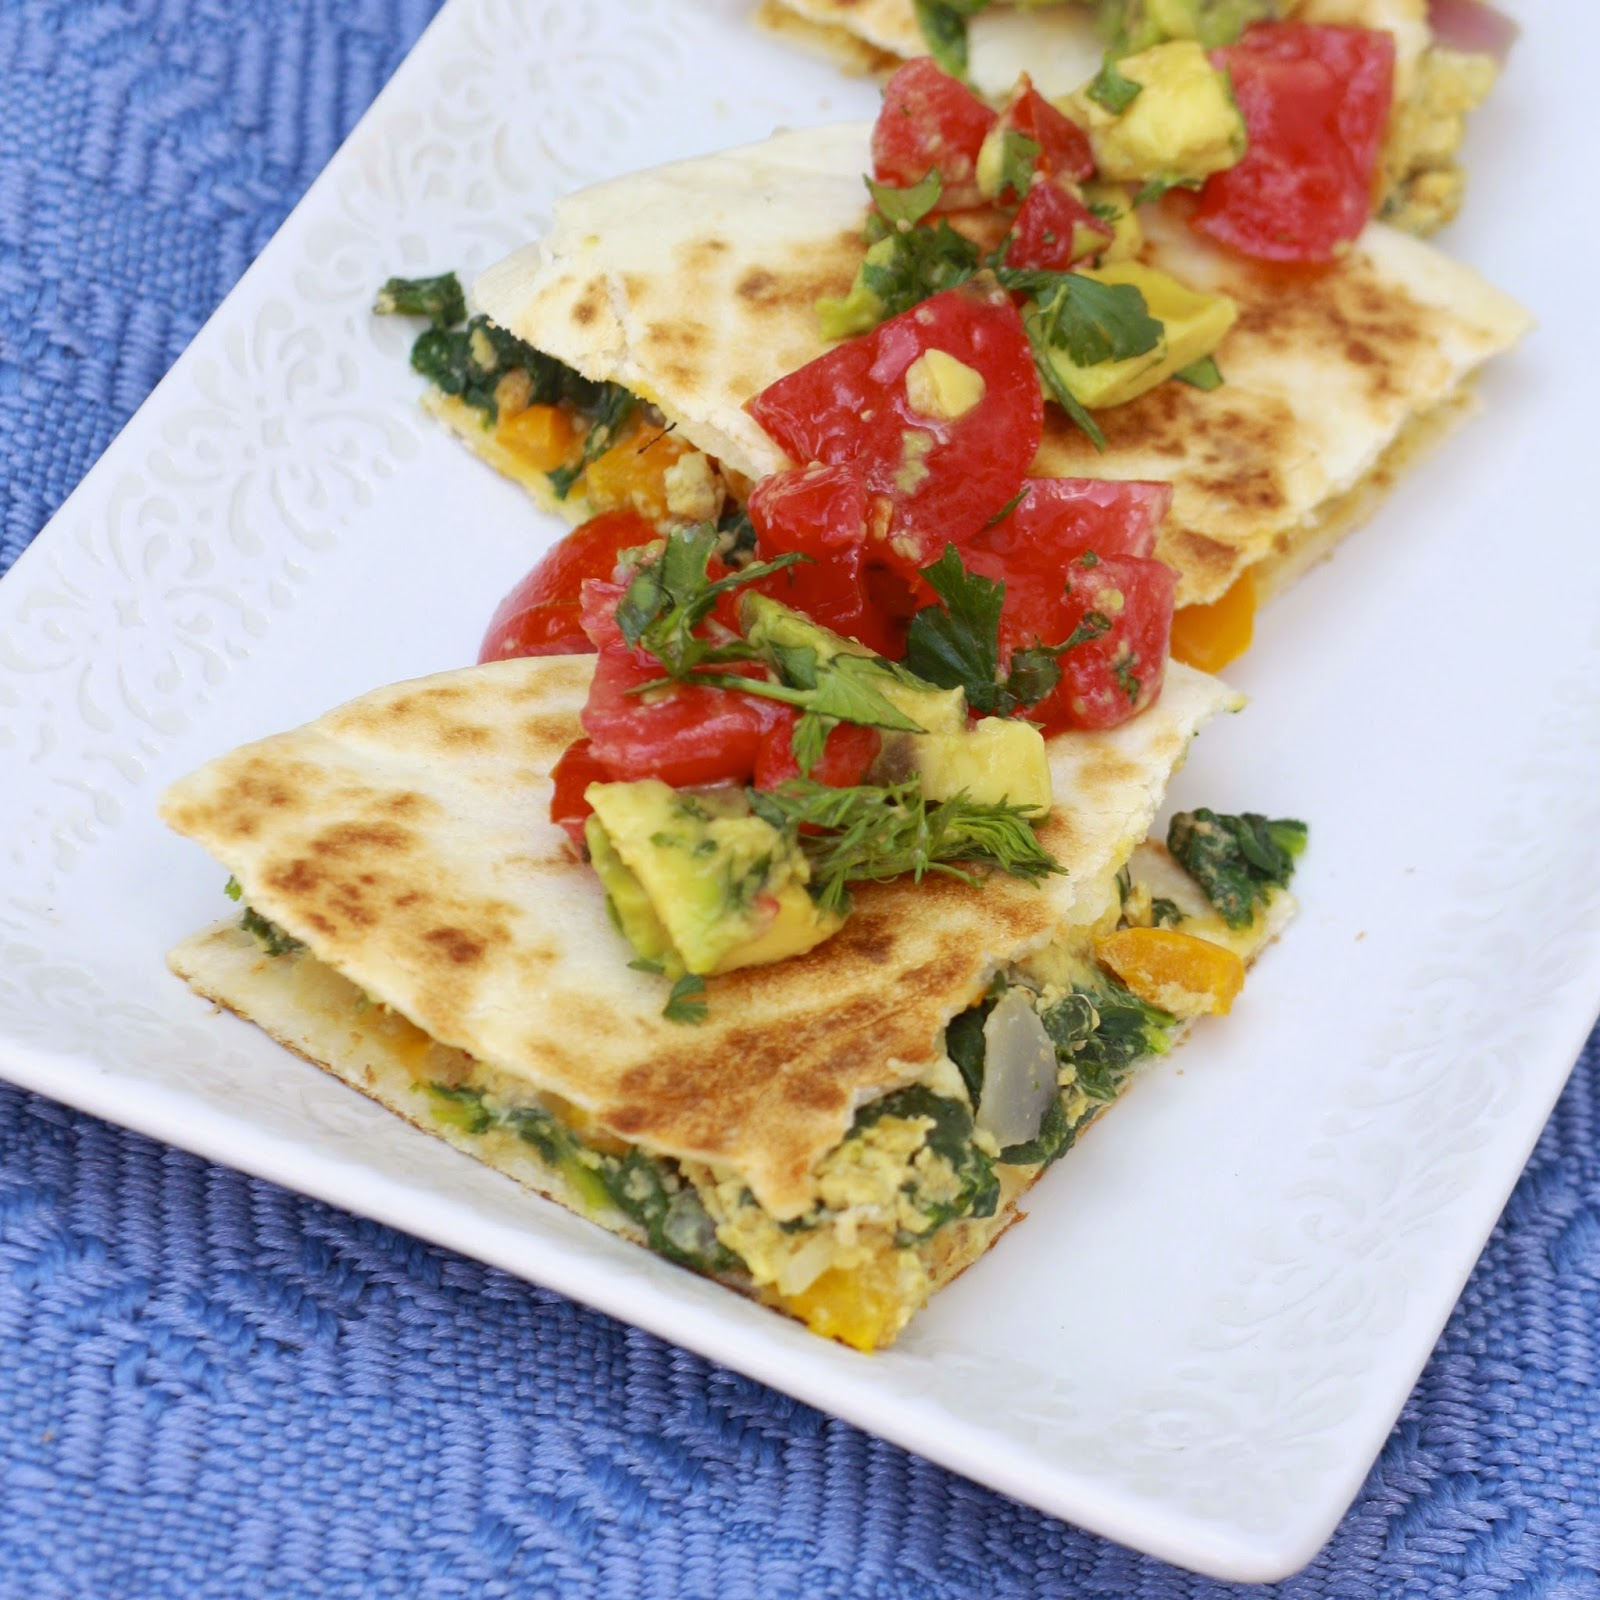 Breakfast Quesadillas | The Sweets Life